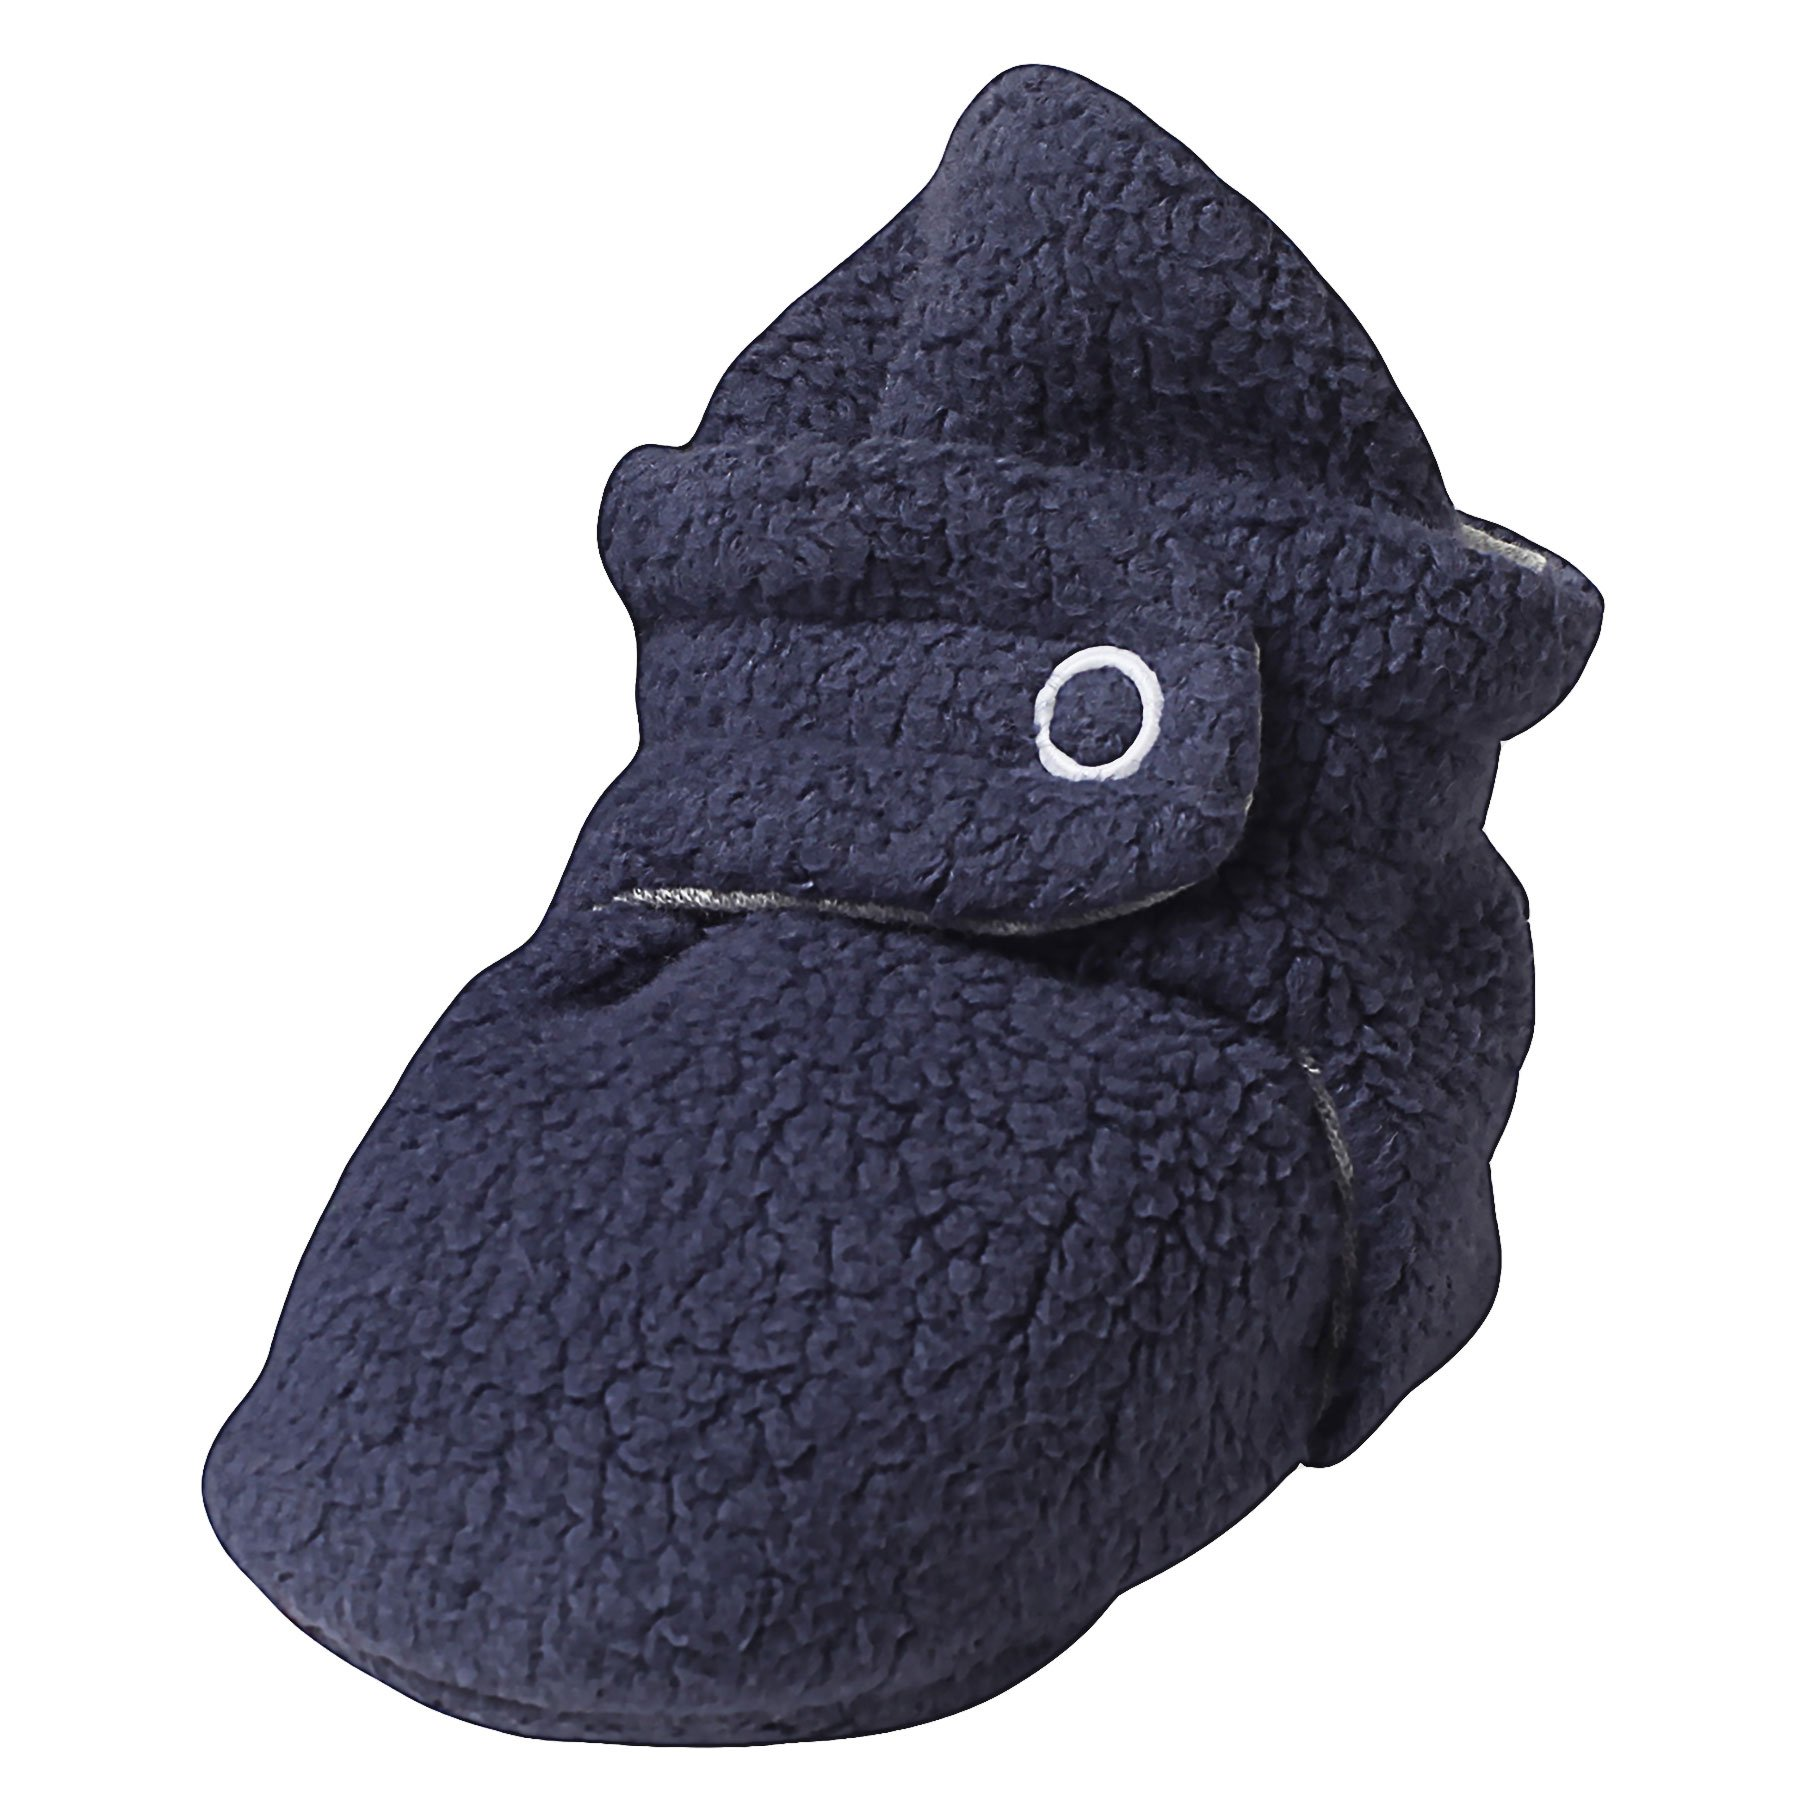 Zutano Booties Unisex Cozie Fleece Baby Bootie Warm Slipper Socks Navy Grey 12M